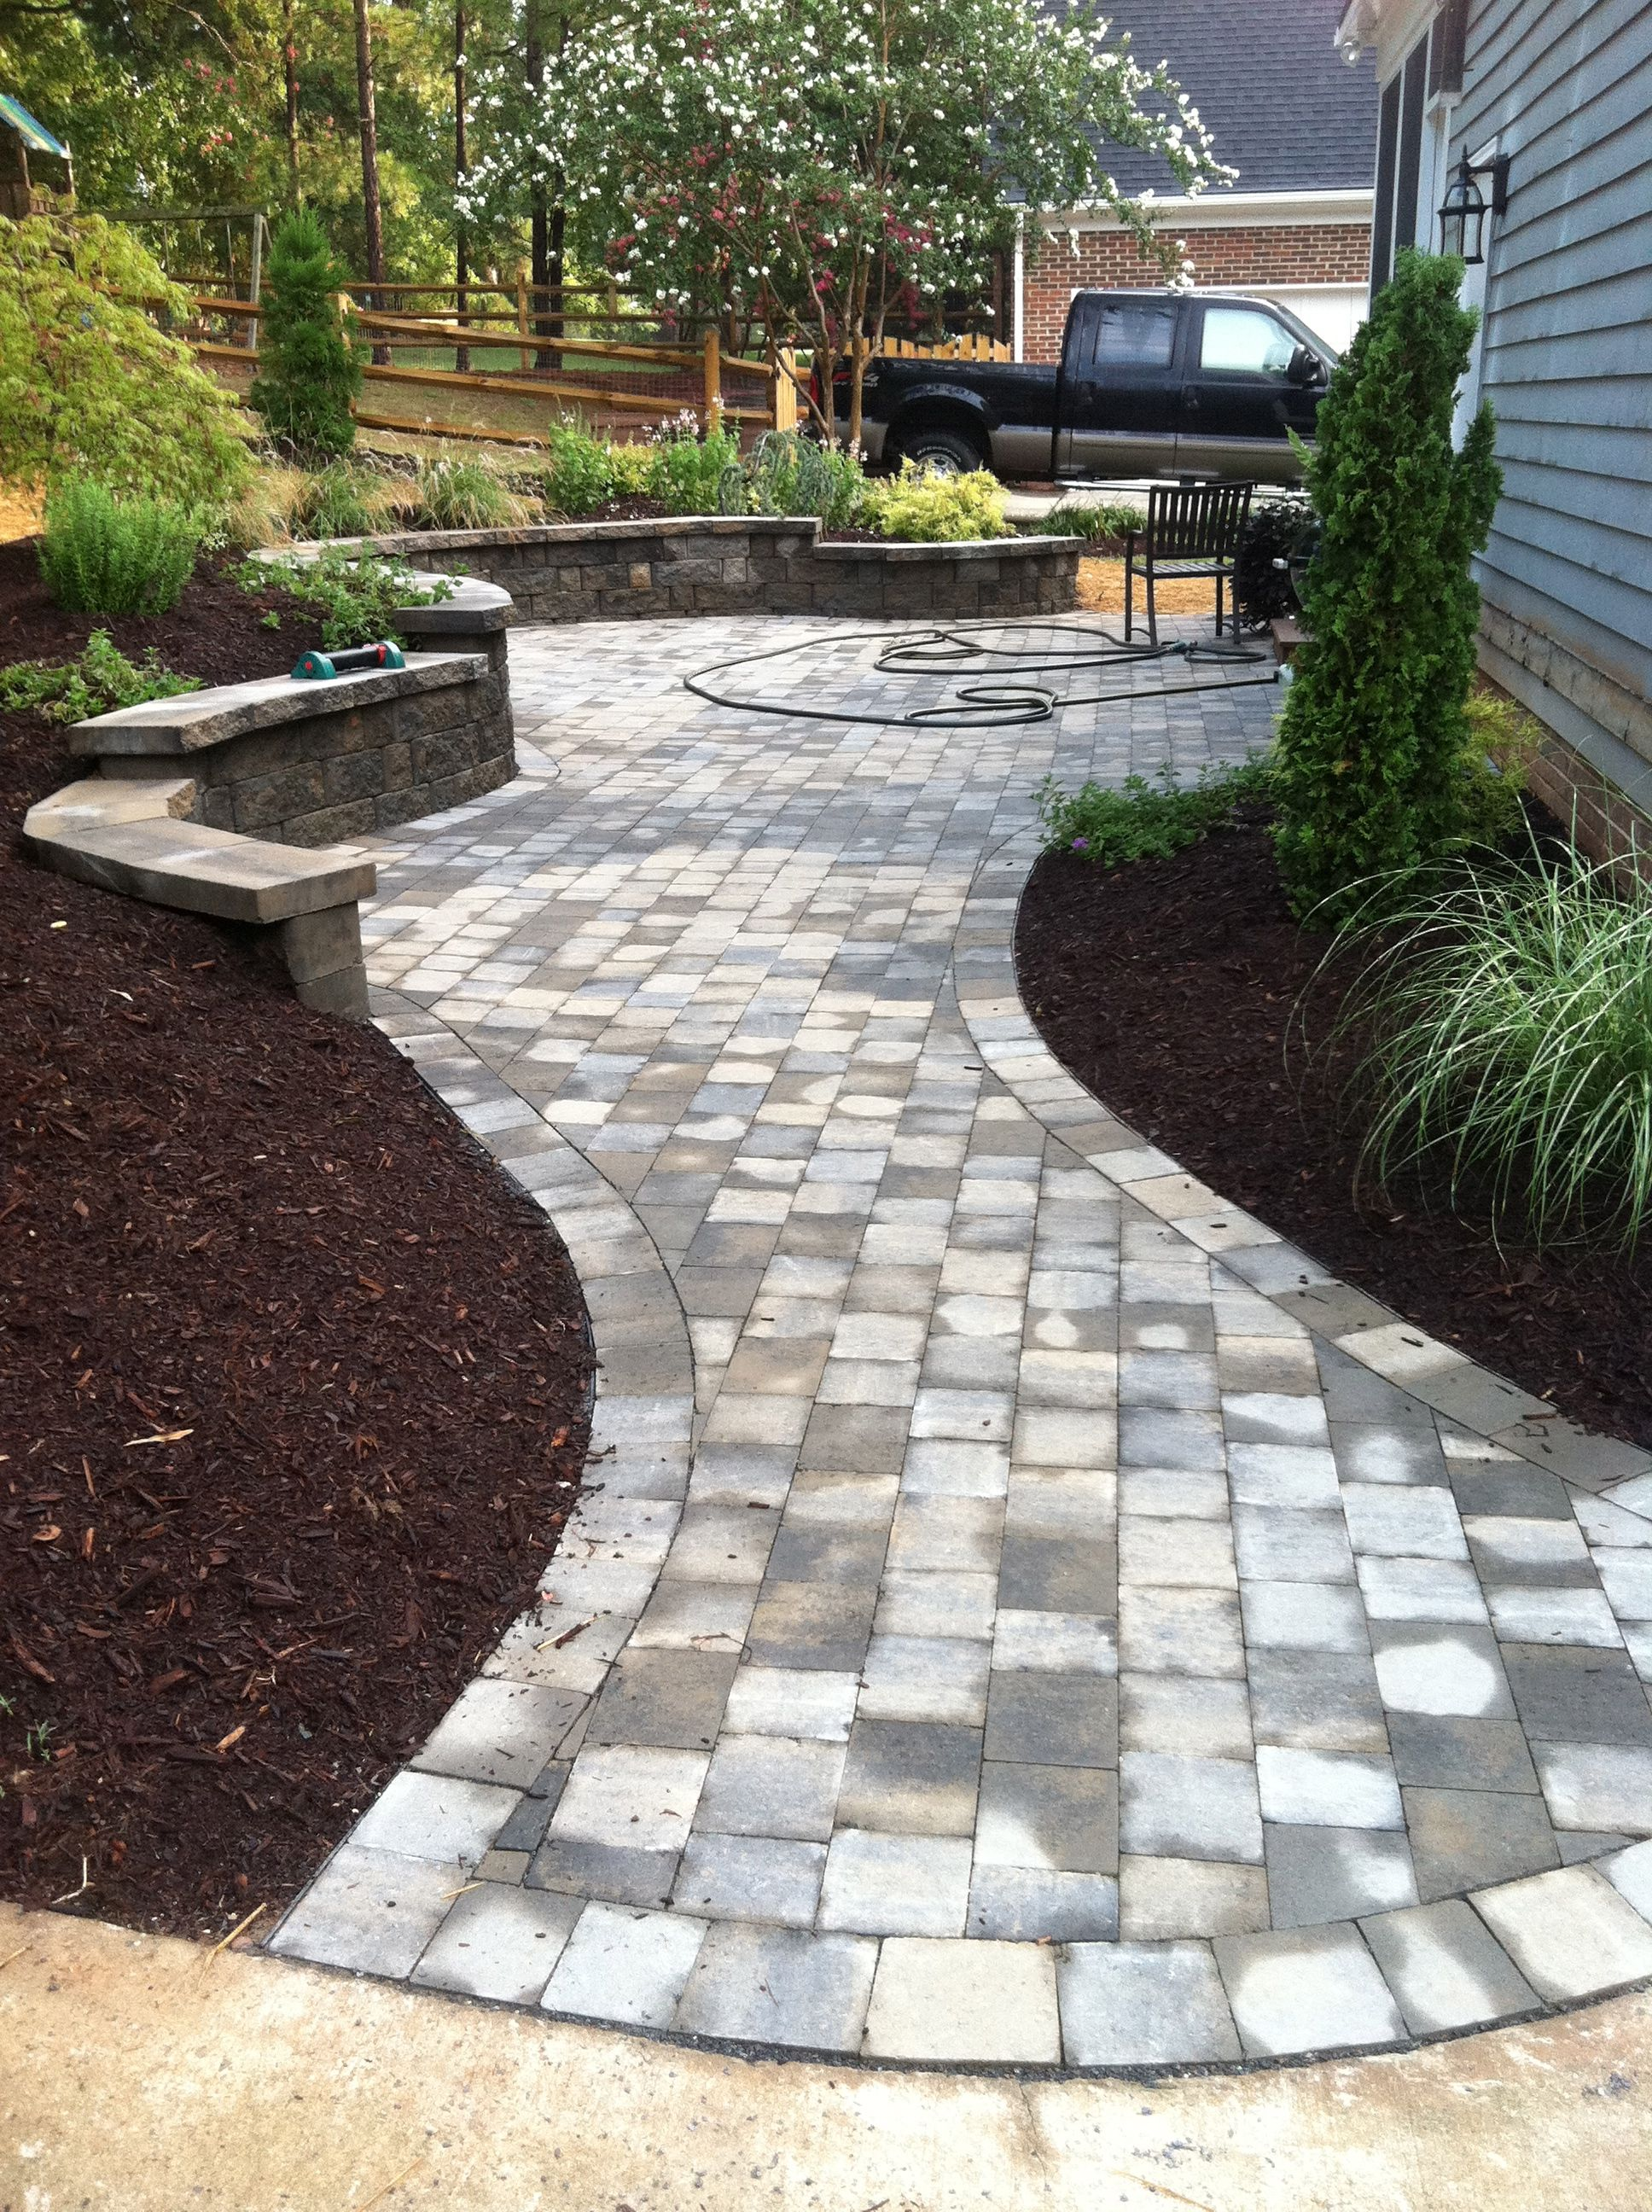 Walkway designs and patio designs paver patio walkway for Paved garden designs ideas